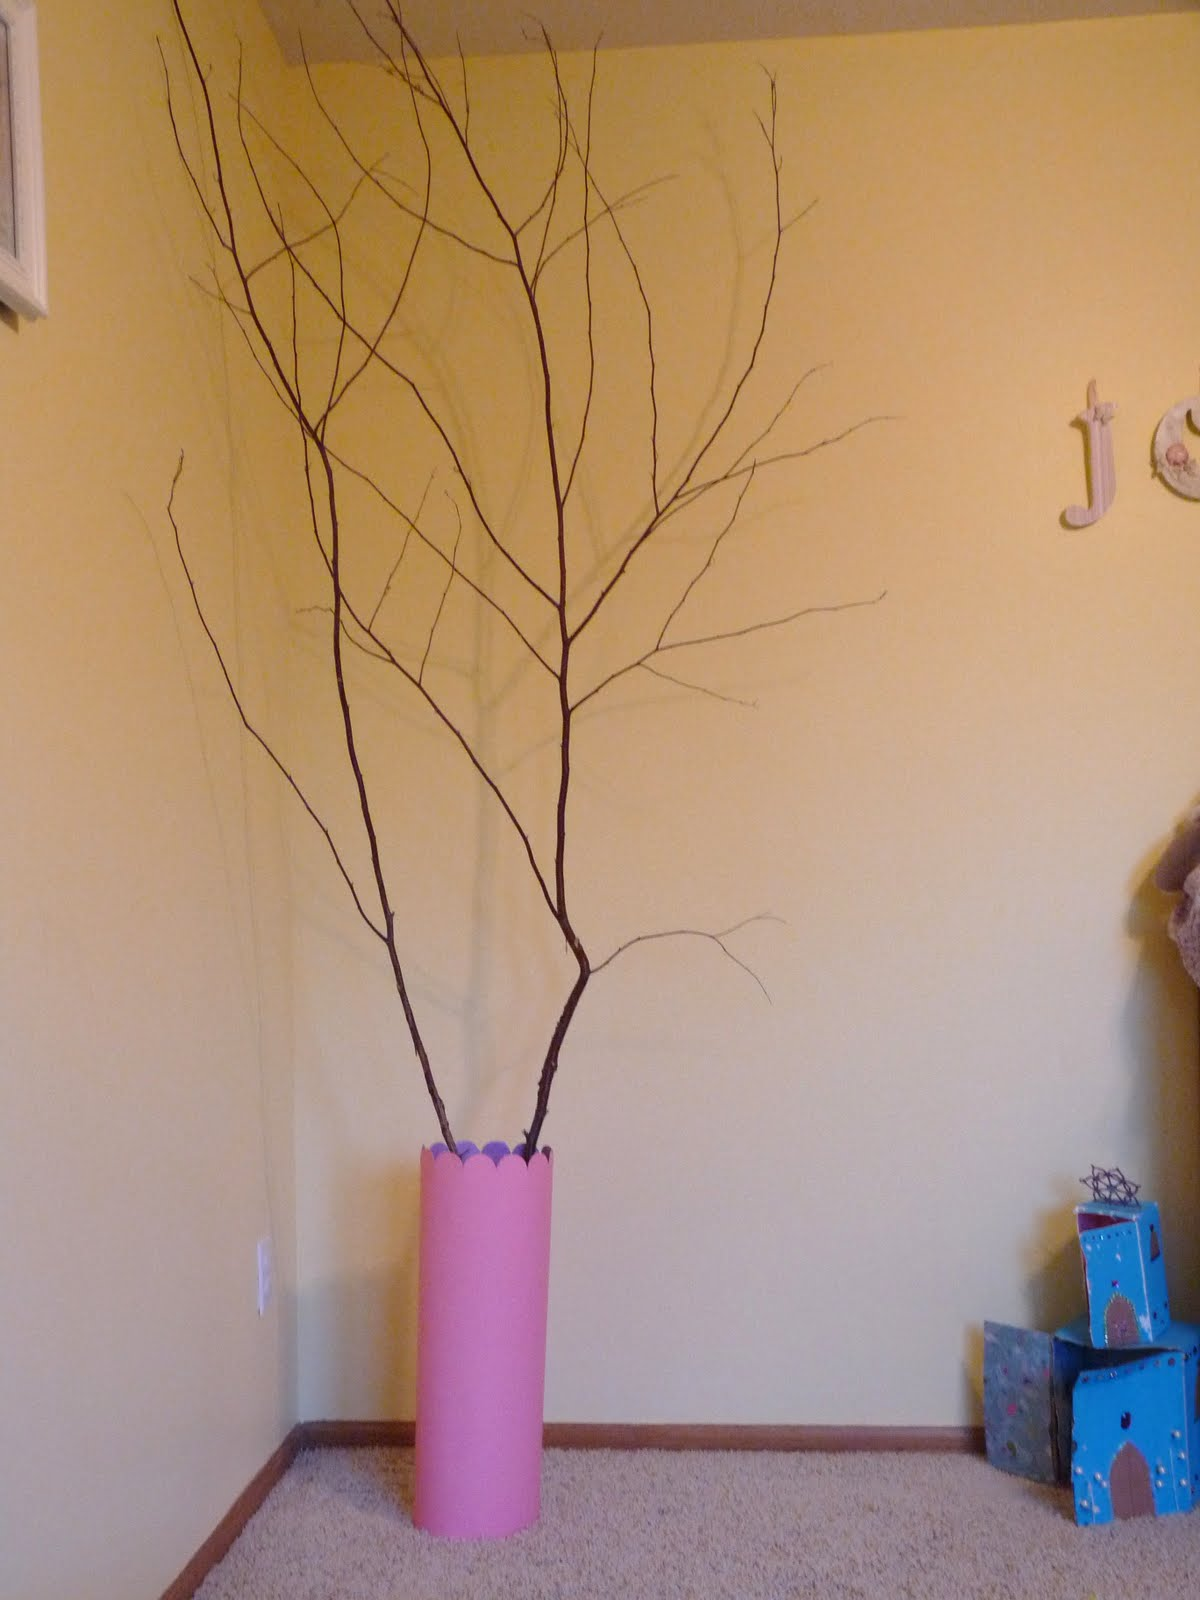 I Got This Tree Branch From Our Backyard After A Recent Storm And Wanted To Put It In My S Room Her Is Slow Work Progress But Coming